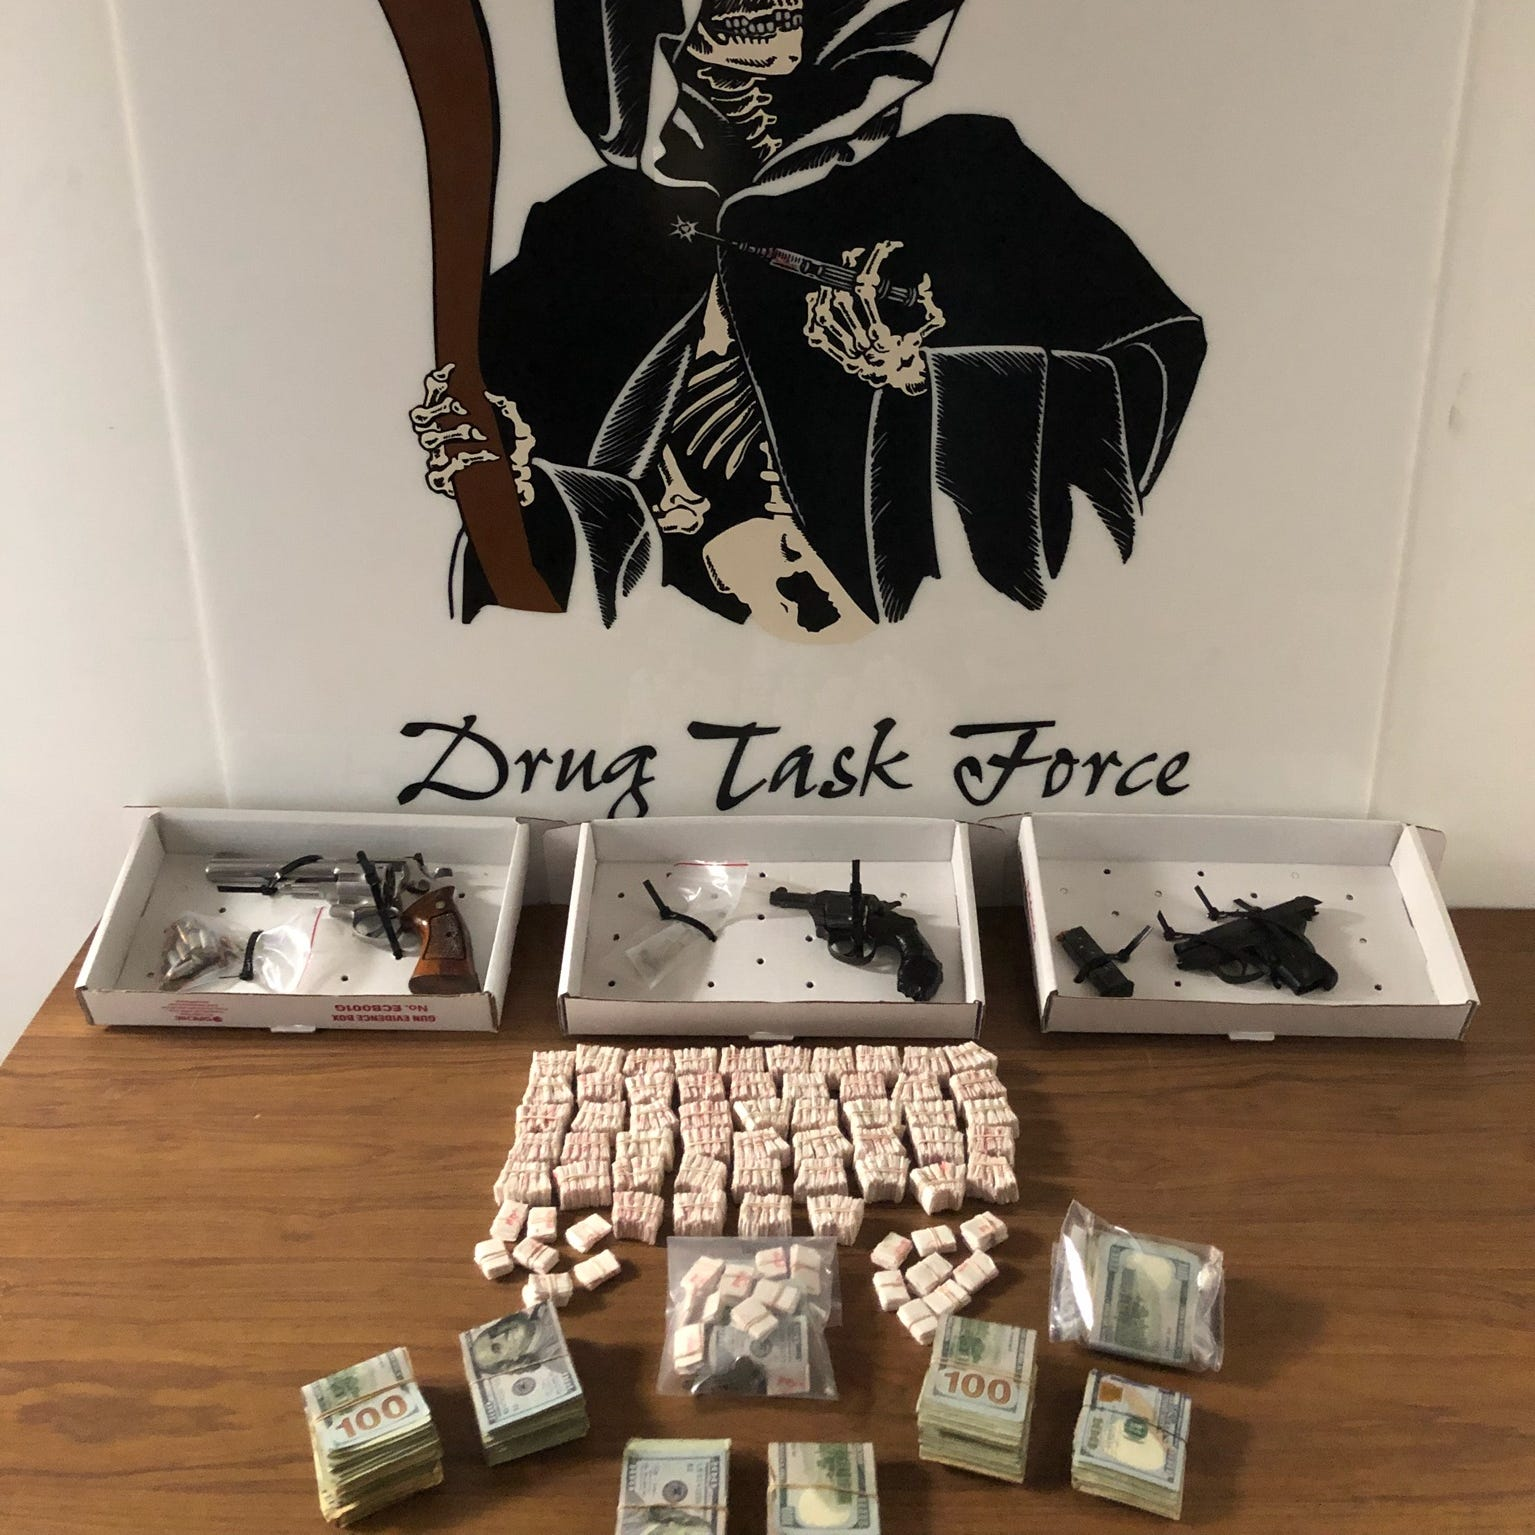 Three handguns, more than 2,000 bags of heroin, drug paraphernalia, and over $11,000 cash was recovered in a raid, according to the Dutchess County Drug Task Force.